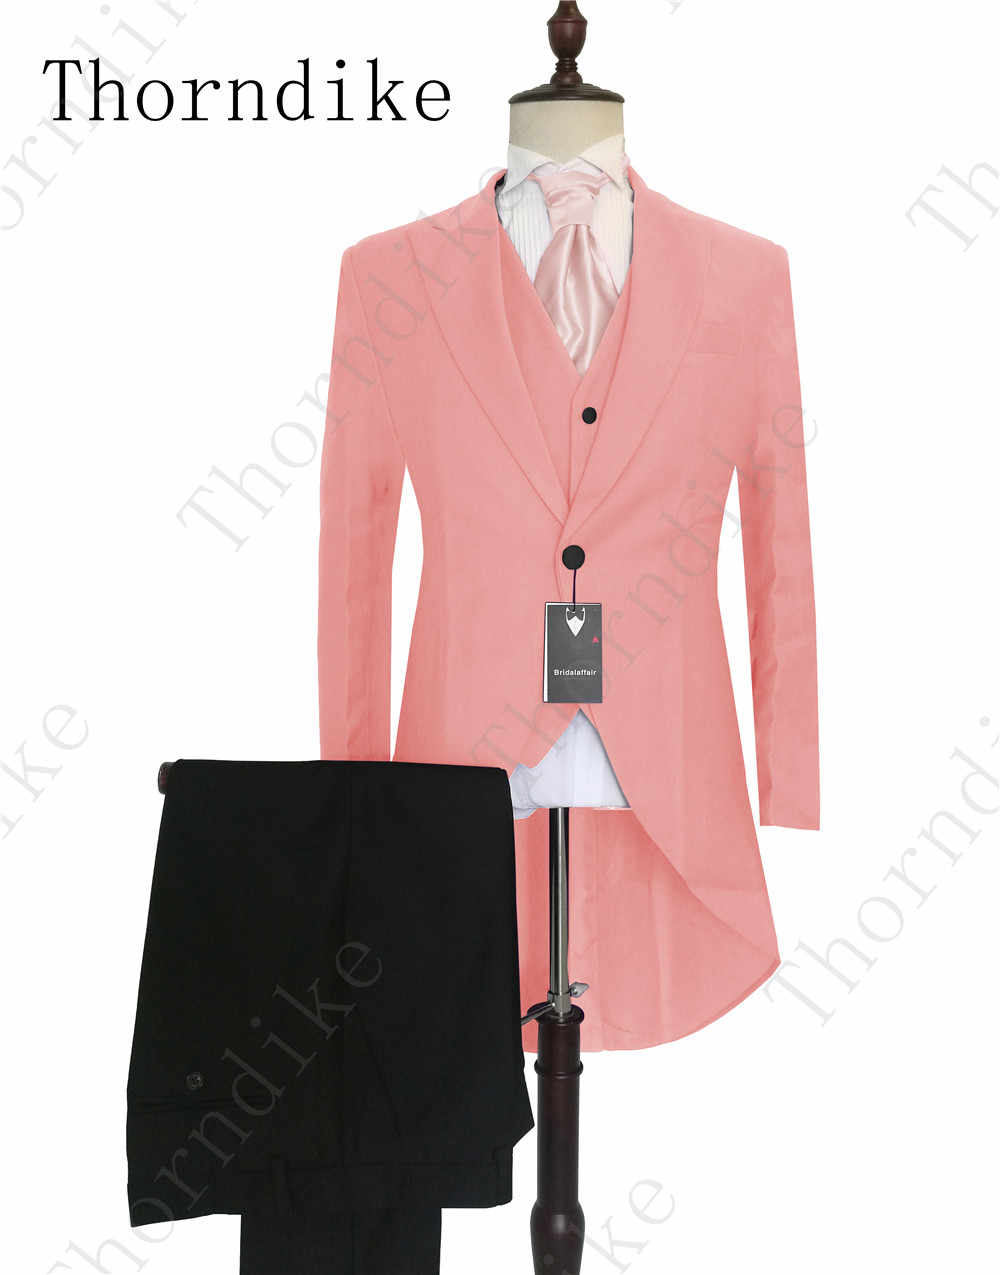 2020 Pink Italian Stylish Mens Tailcoat Wedding Suits Groomsmen Suits Slim Fit Groom Tuxedos Men Suit Set Jacket Pants Vest Suits Aliexpress